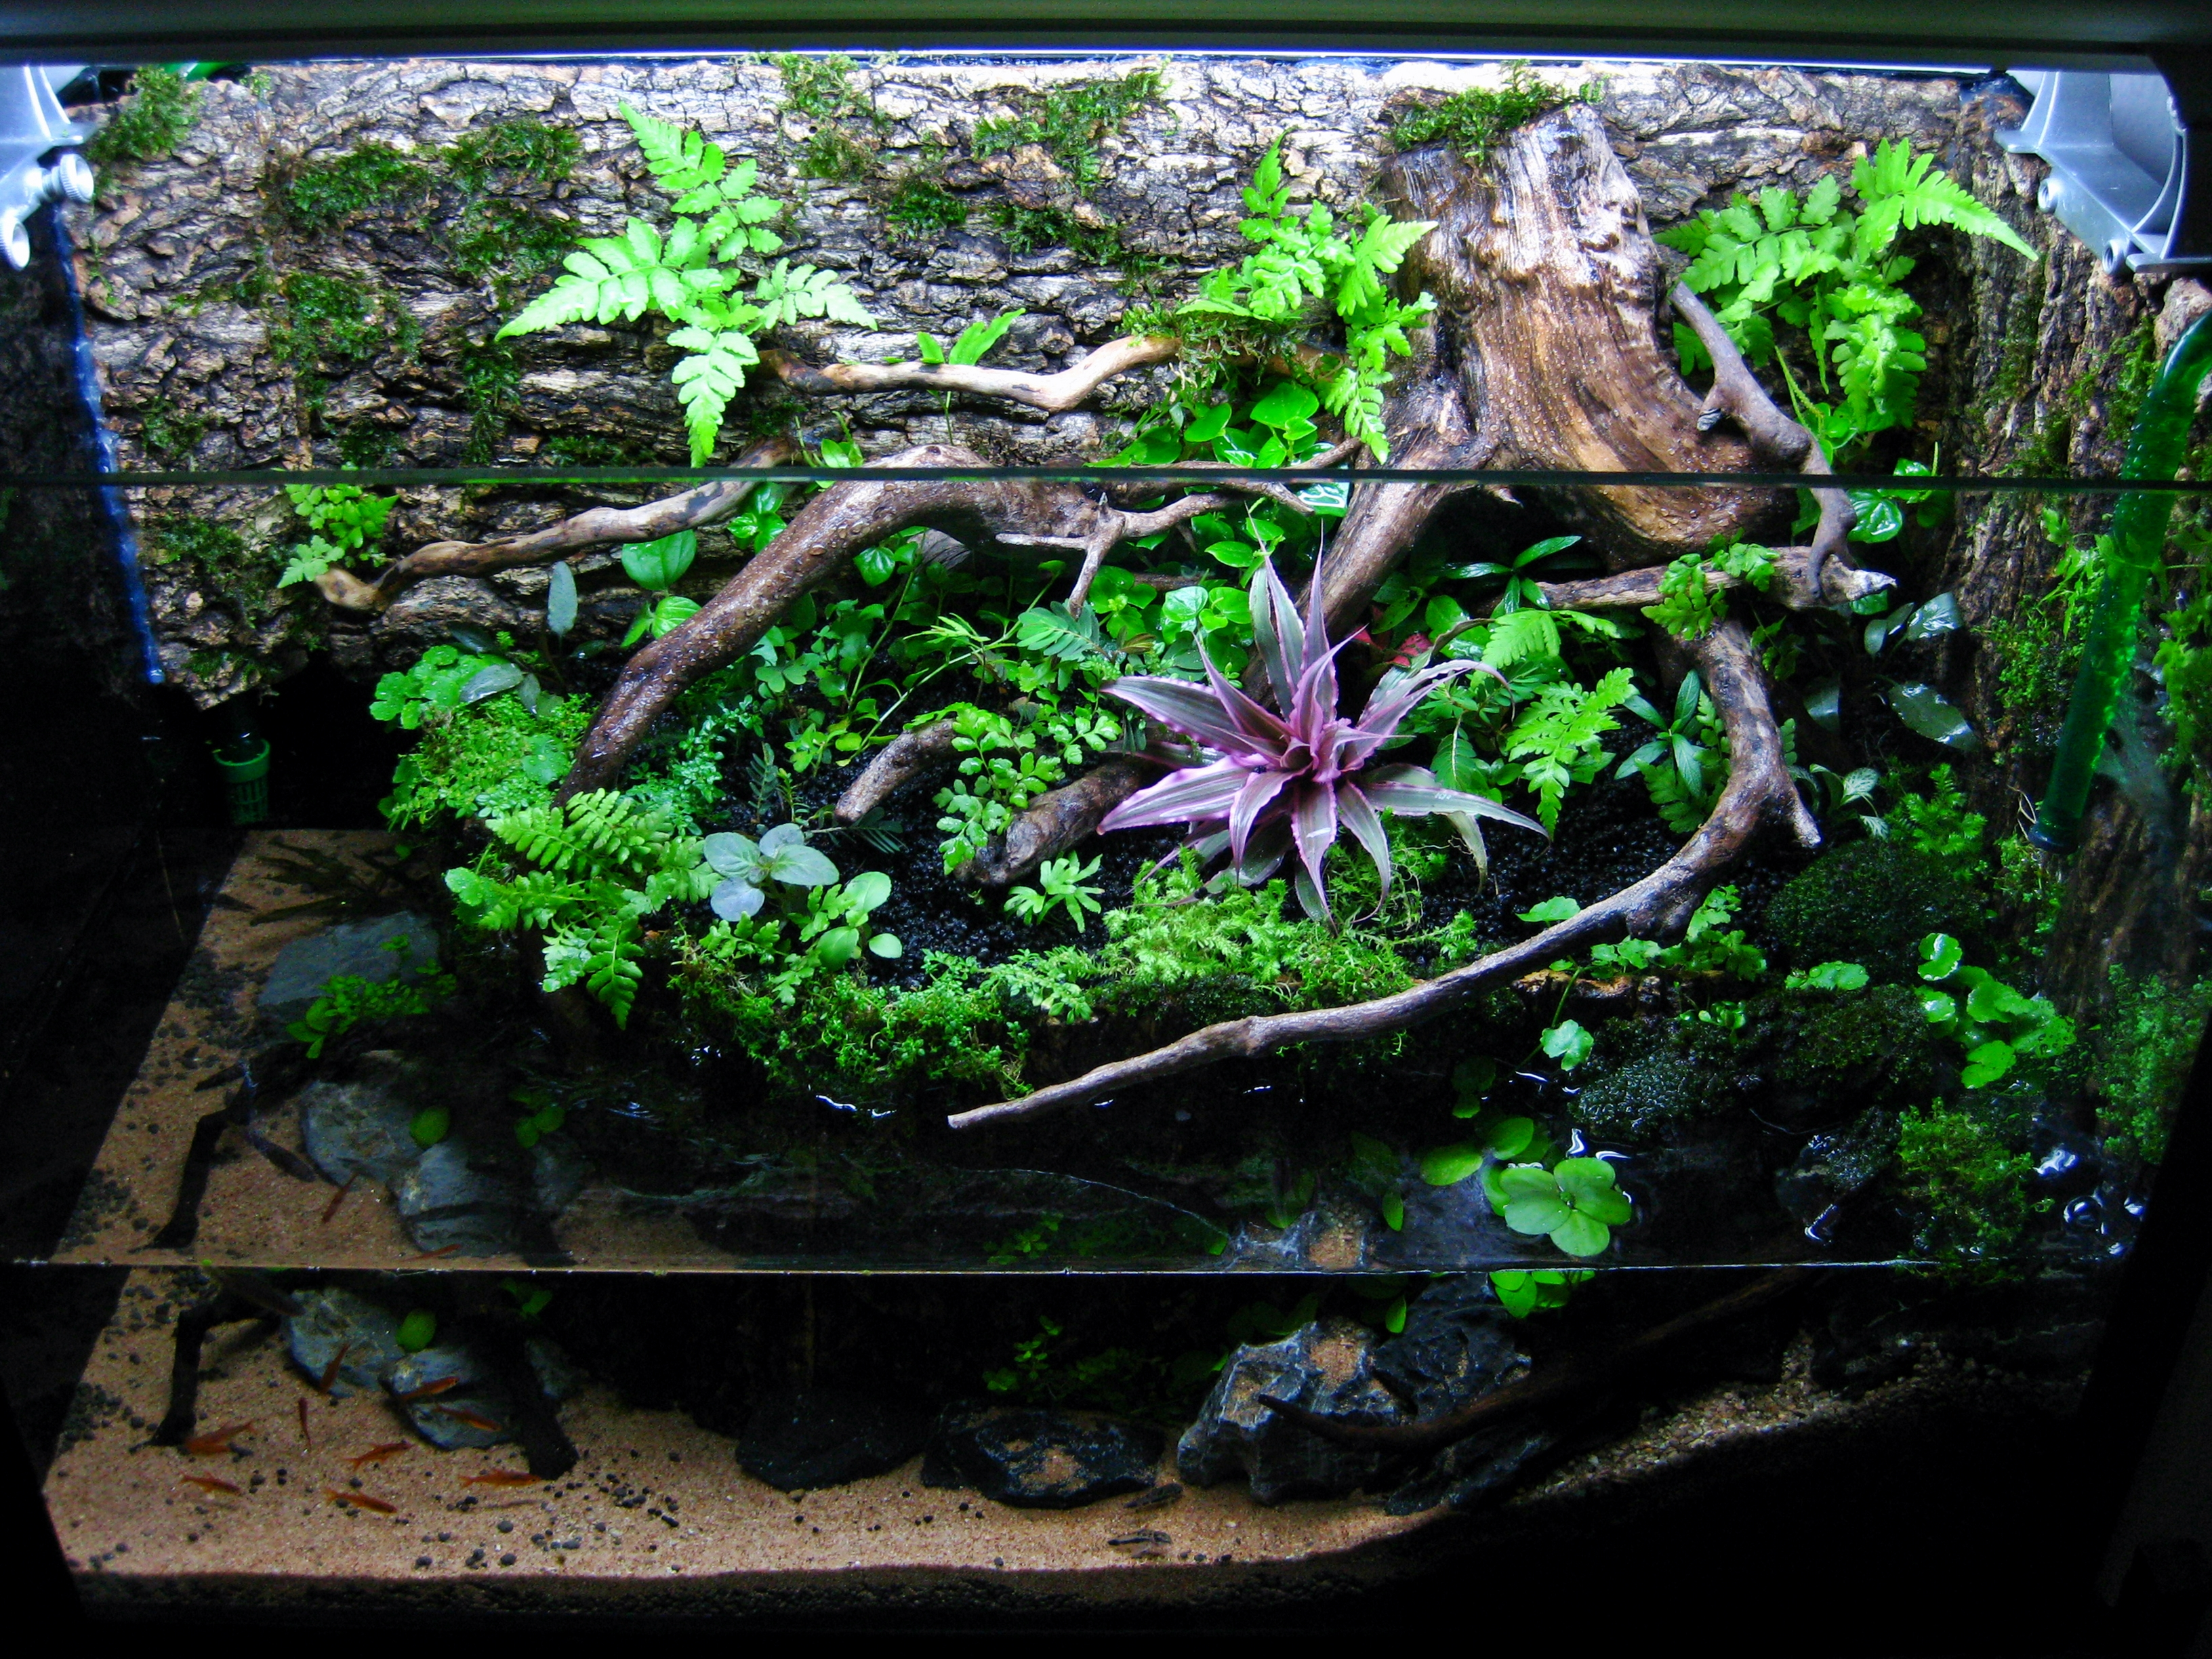 Initial planting. Took some wild plants from a nearby drain. Unique Fish Tank Decorations